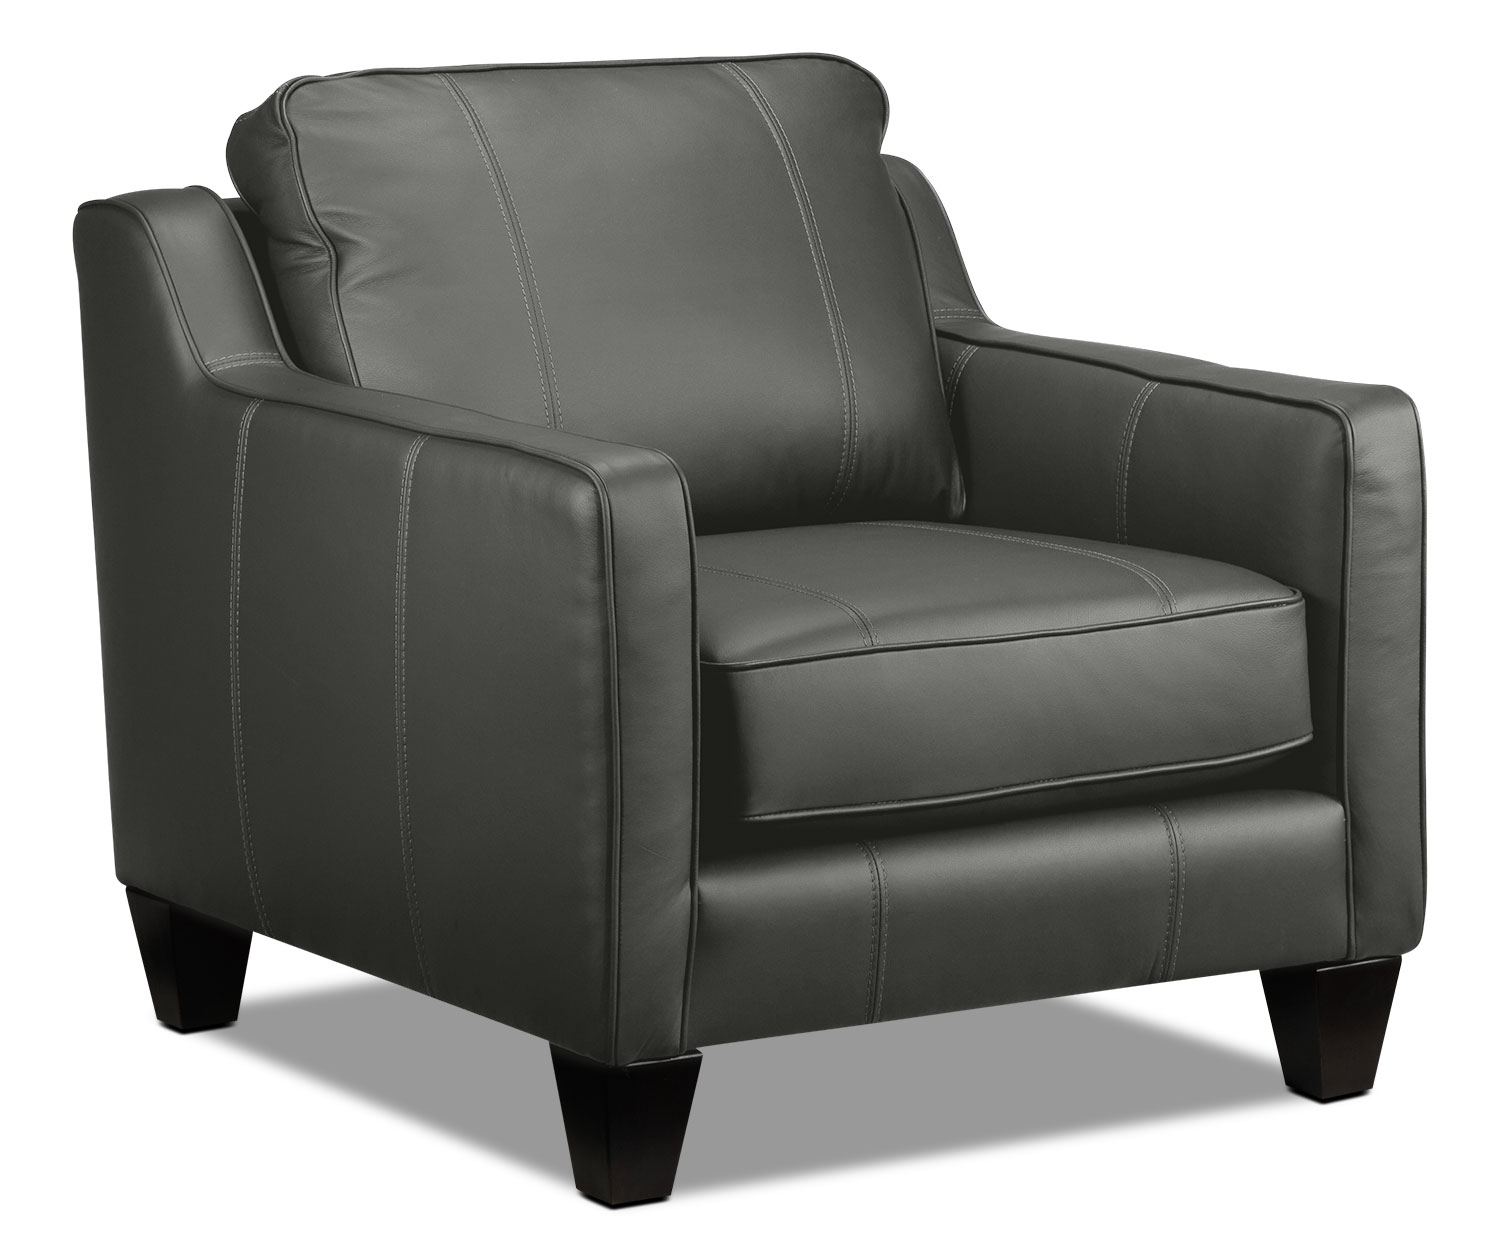 Living Room Furniture - Selinda Chair - Charcoal